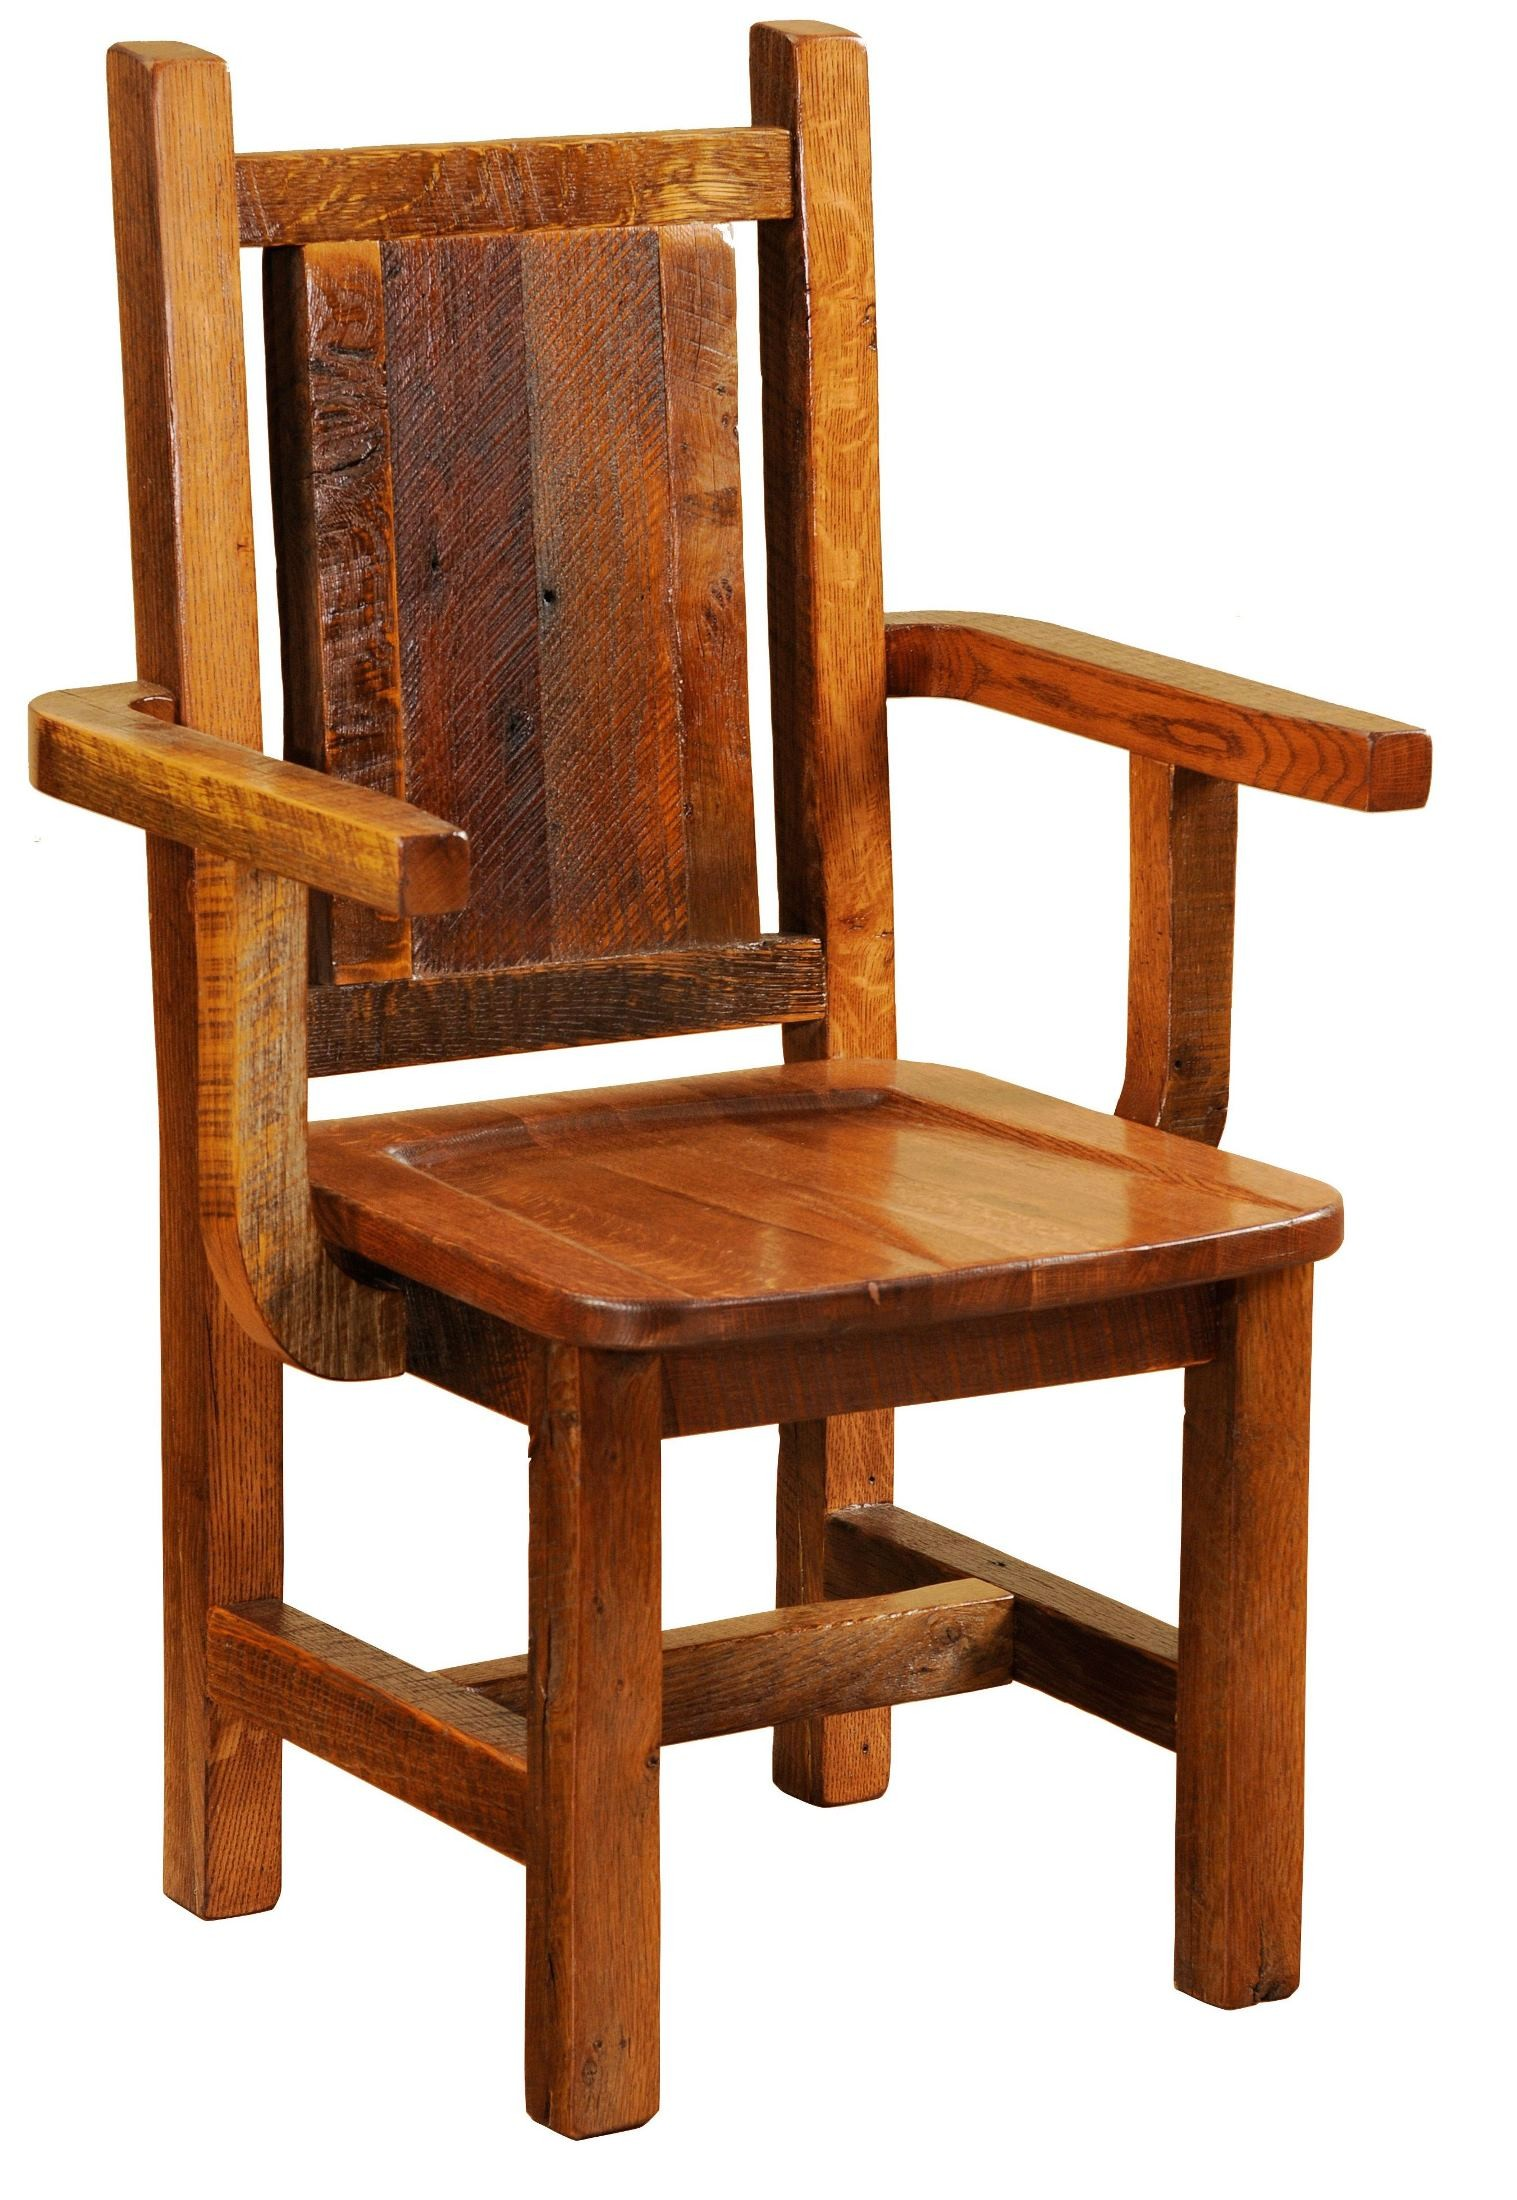 Barnwood Contoured Wood Seat Artisan Dining Arm Chair from ...